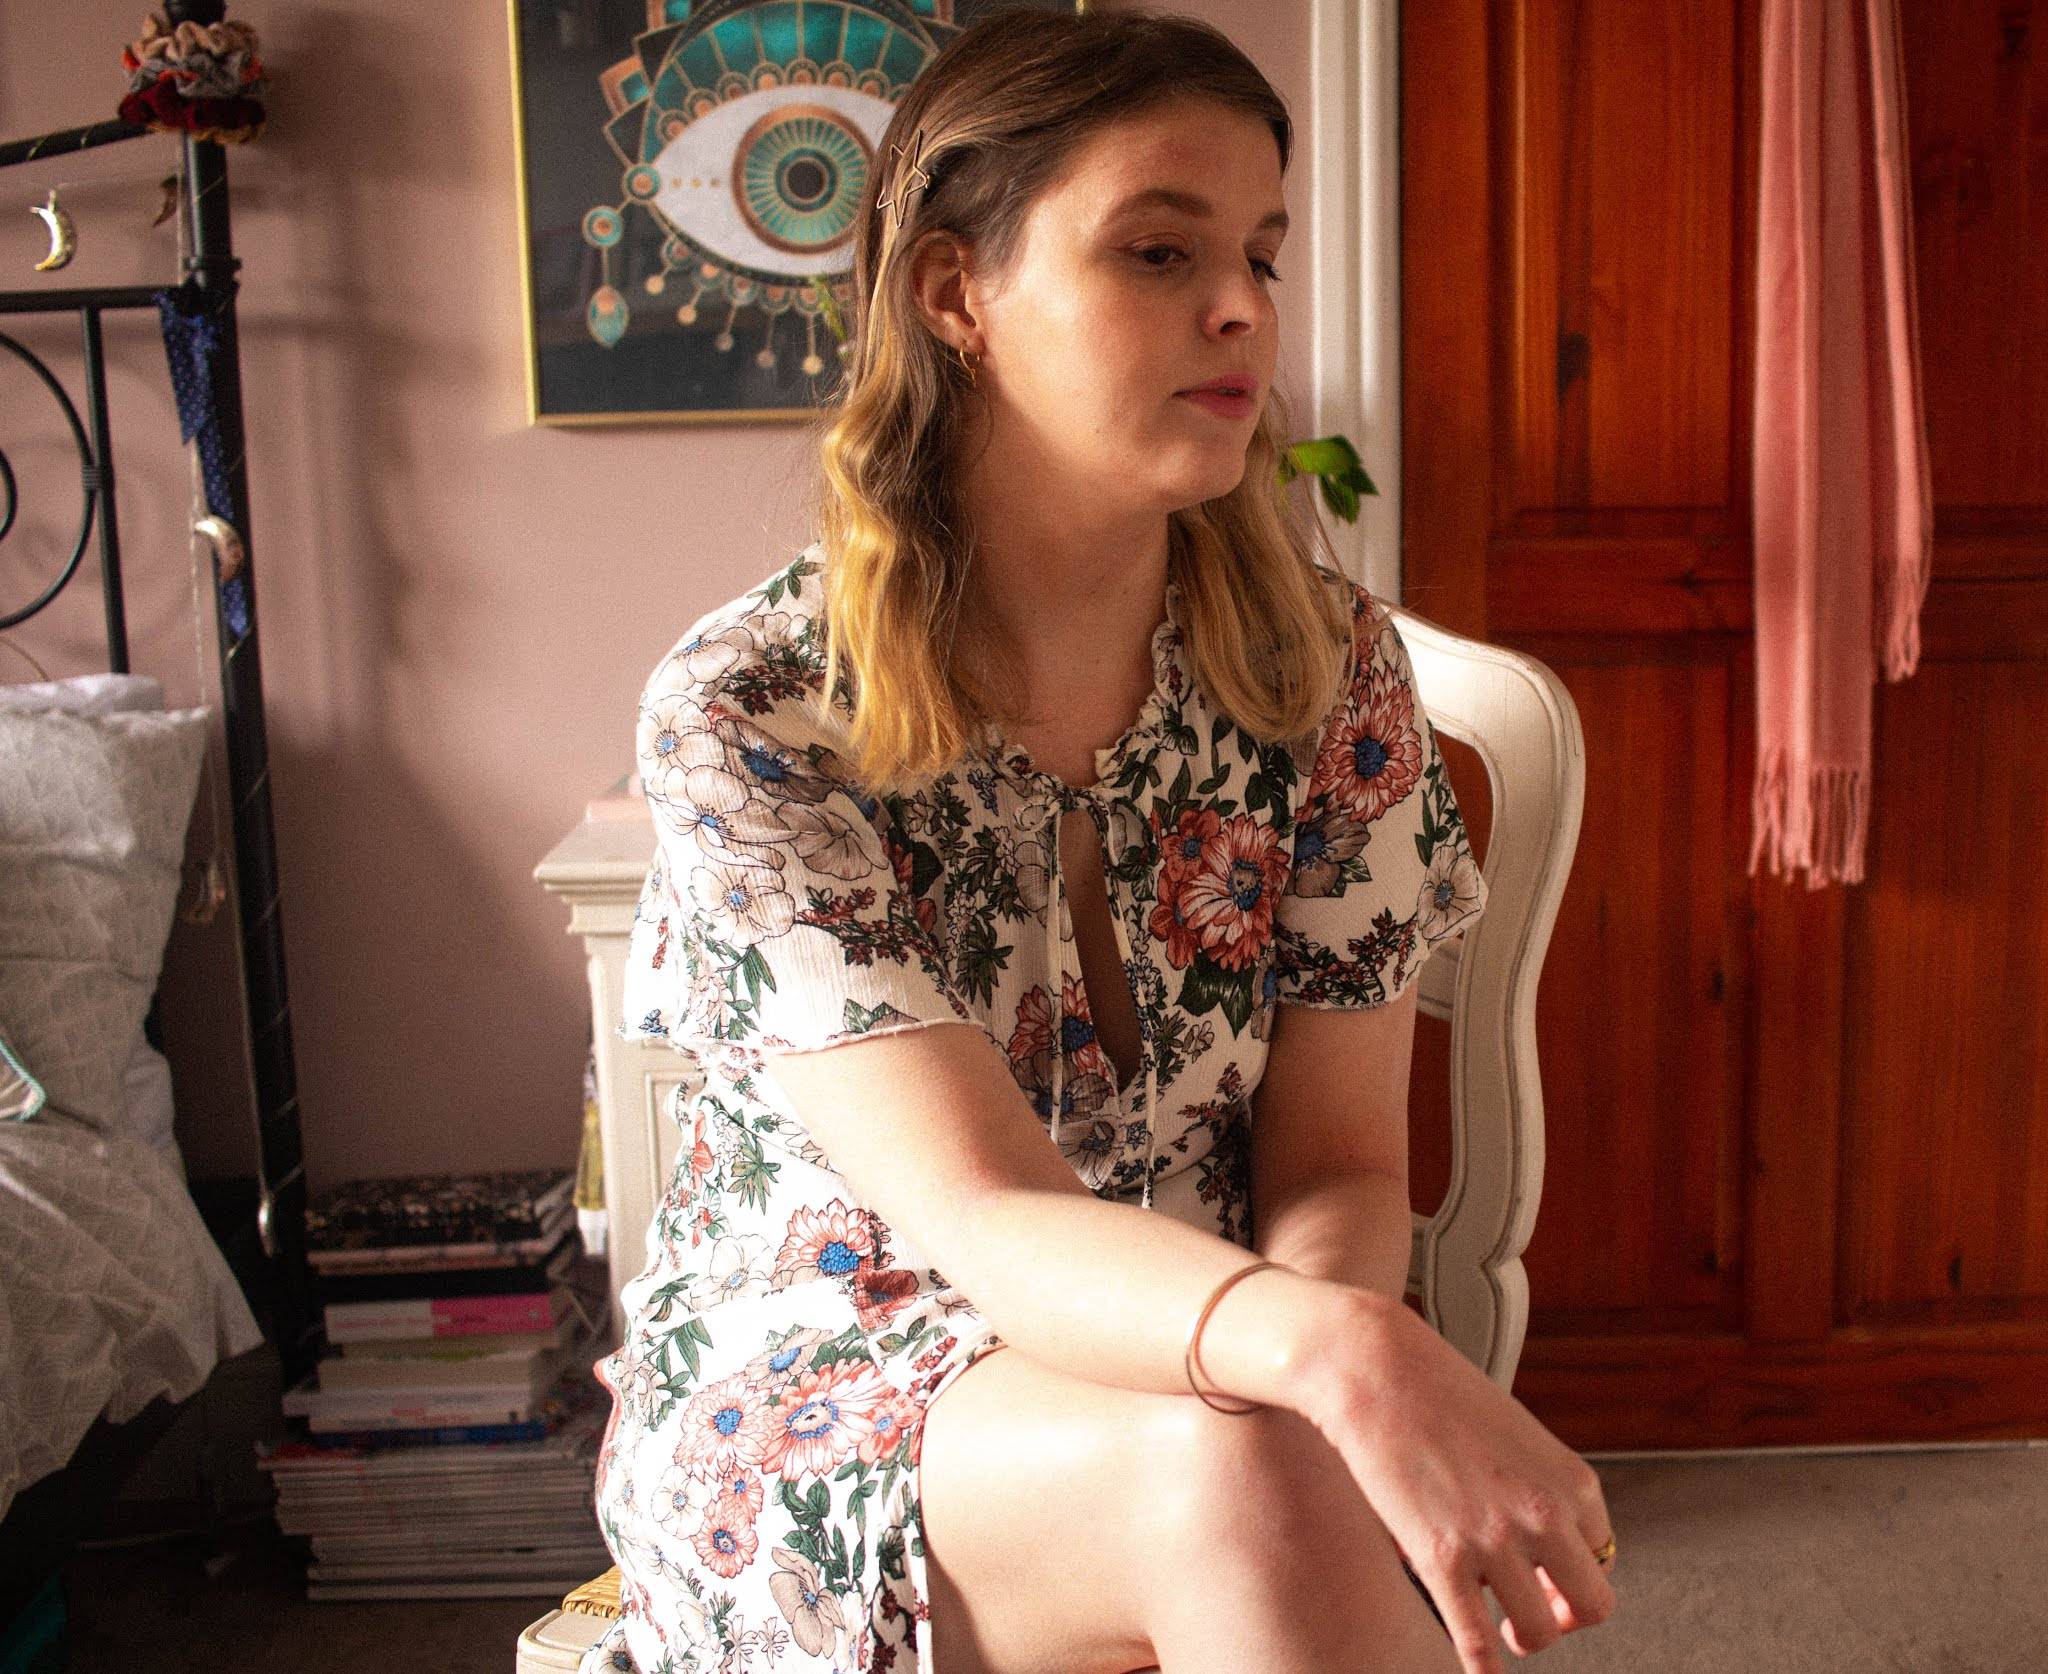 mindfulness blogger - girl in floral dress - how to live with more intention